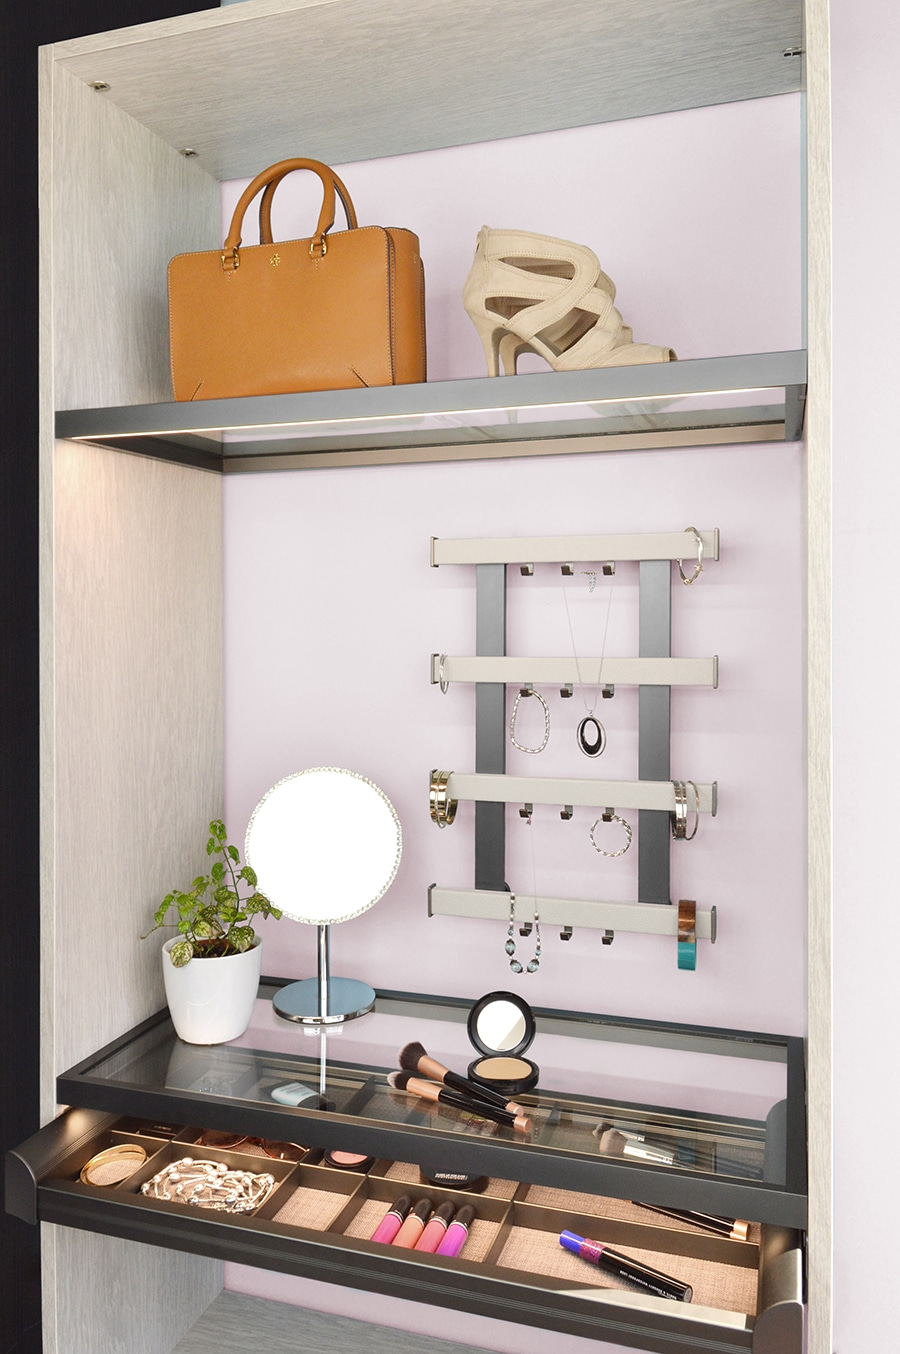 Tip 5 make up stand with luxury wall organizer for jewelry Innovate Home Org Columbus Ohio | Innovate Home Org #customcloset #Organization #makeupstorage